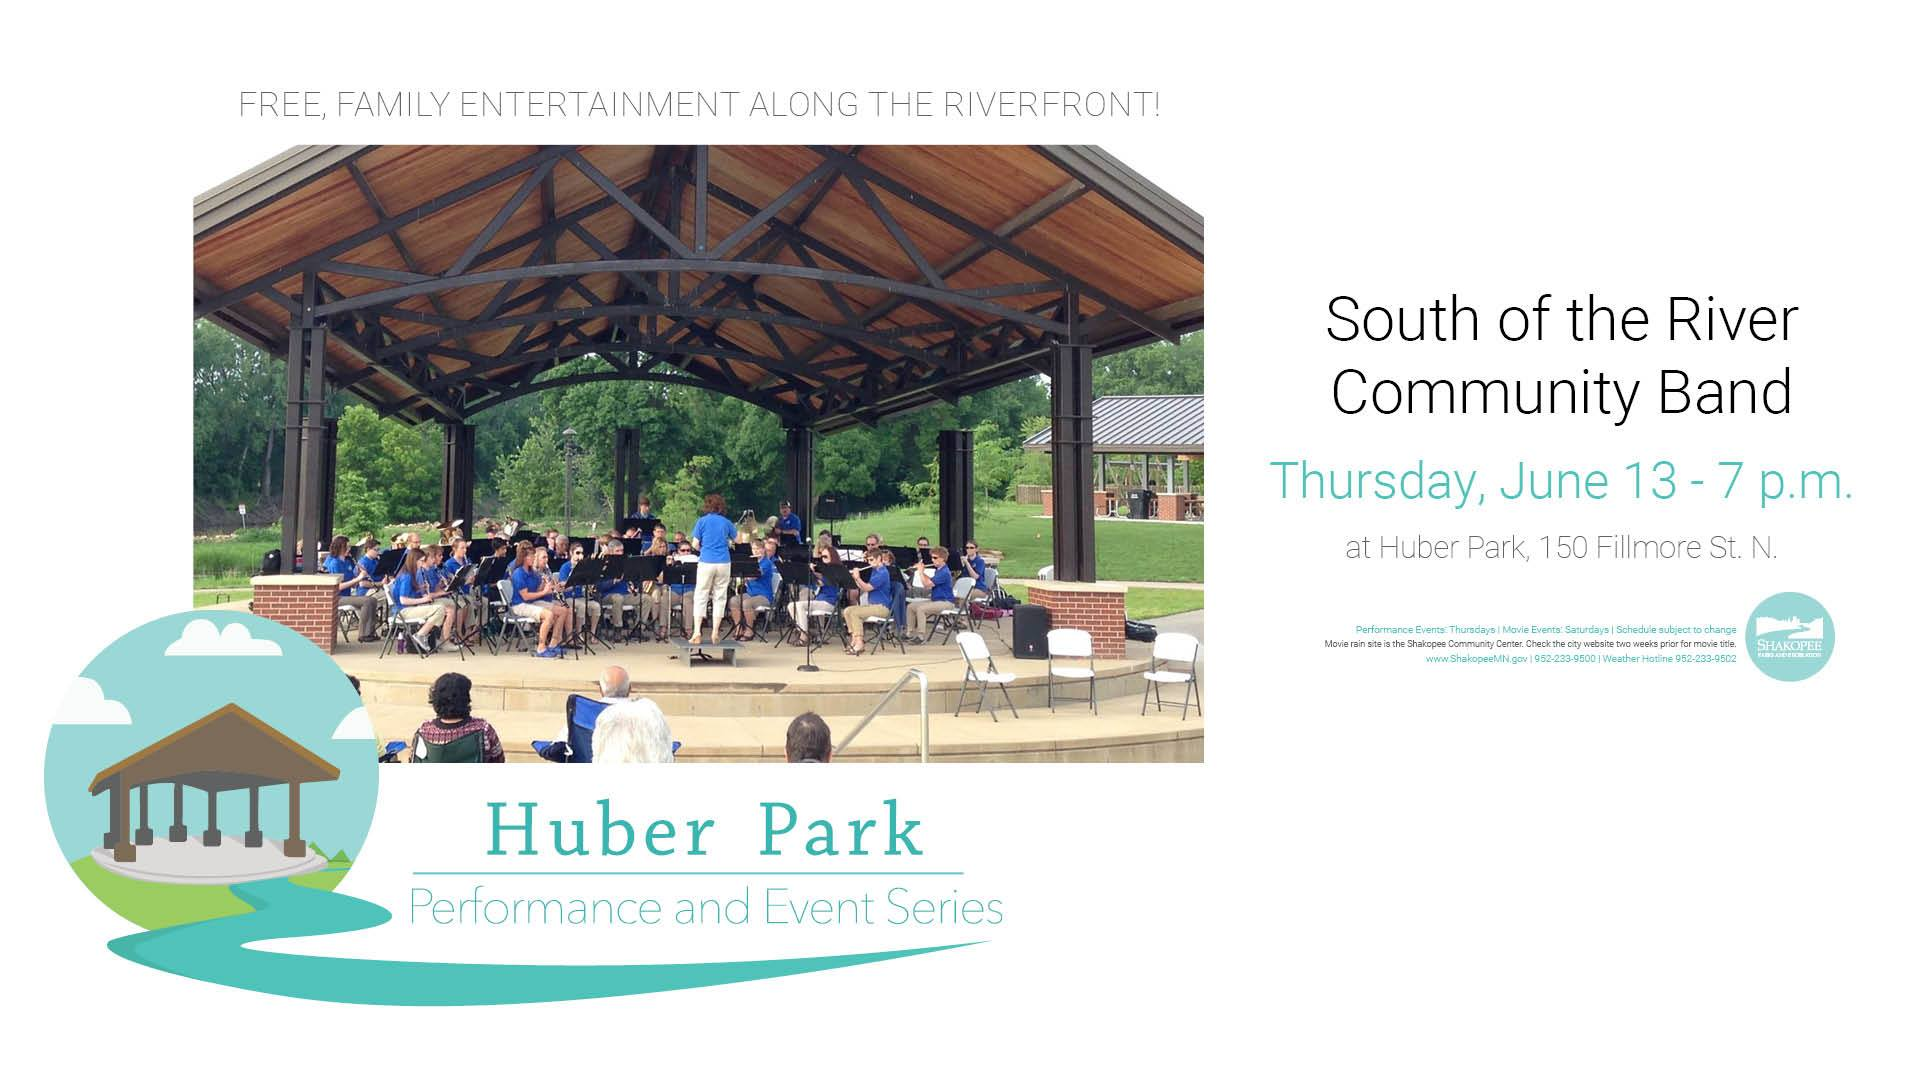 South of the River Community Band